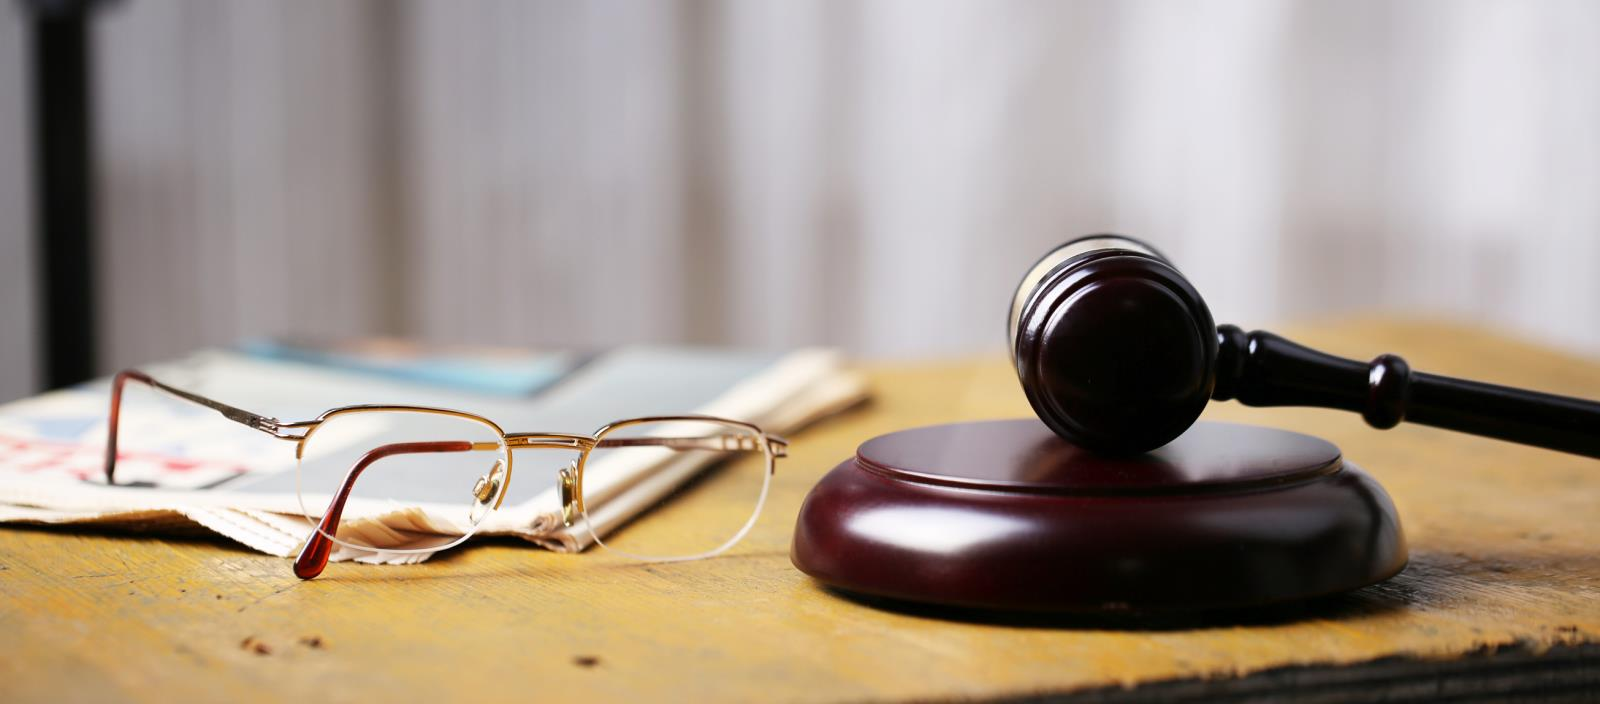 image of gavel book and eye glasses on a table